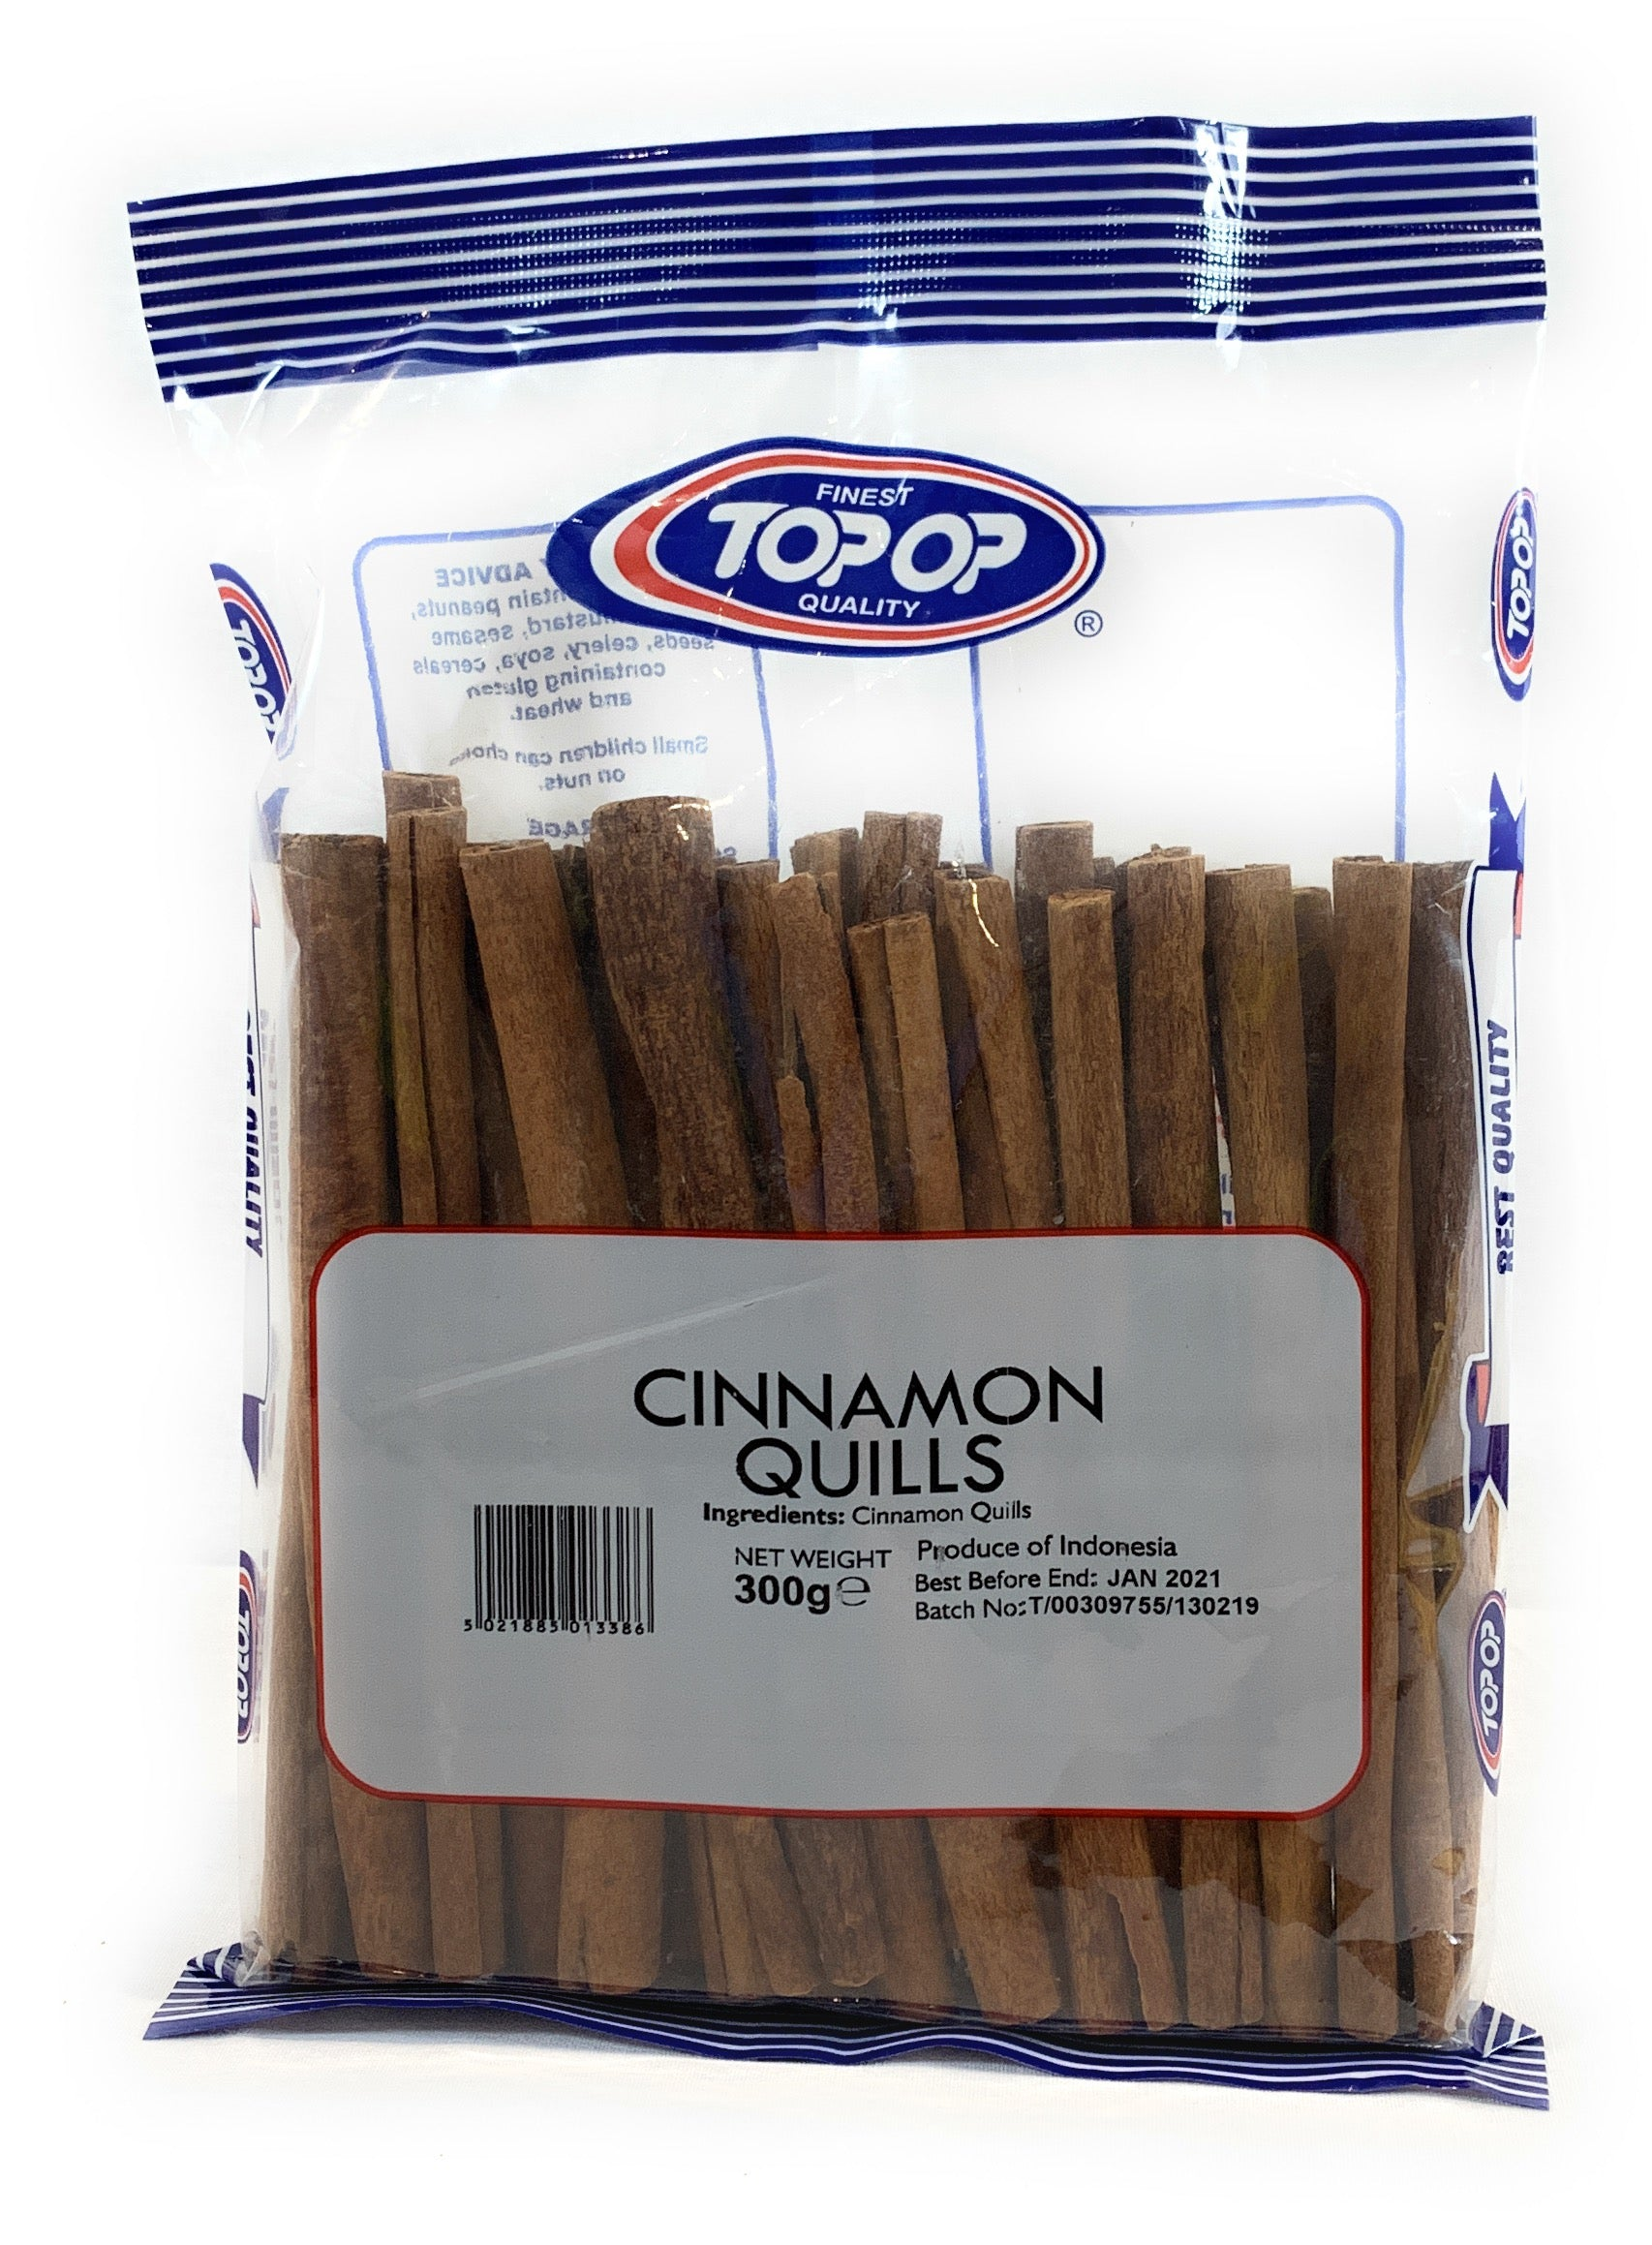 Top-op Cinnamon Quills 300g